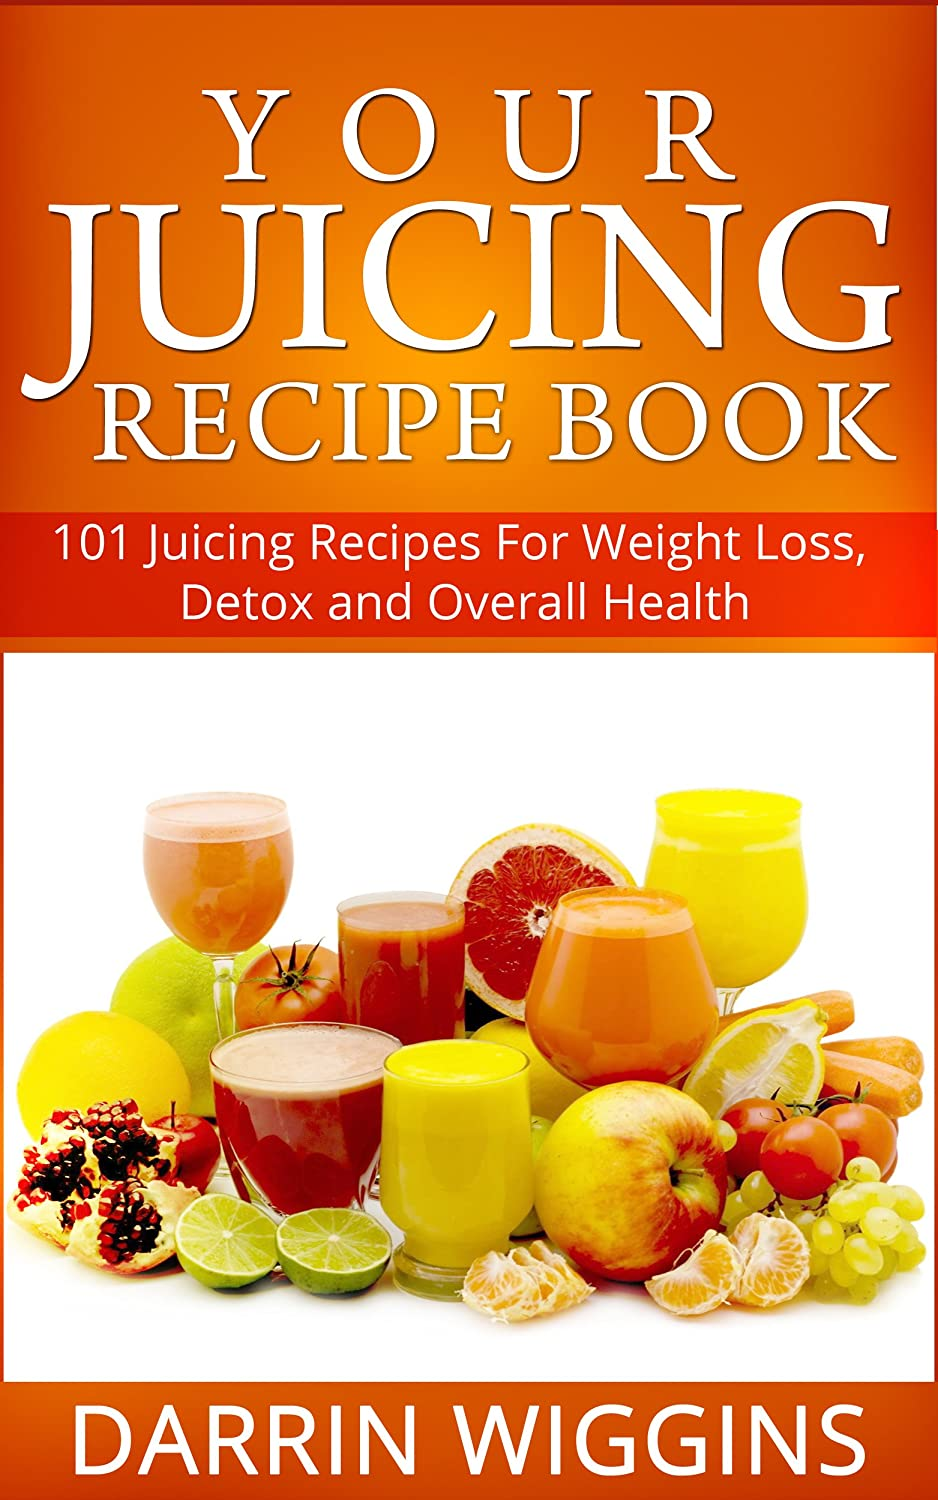 juice-receipe-book